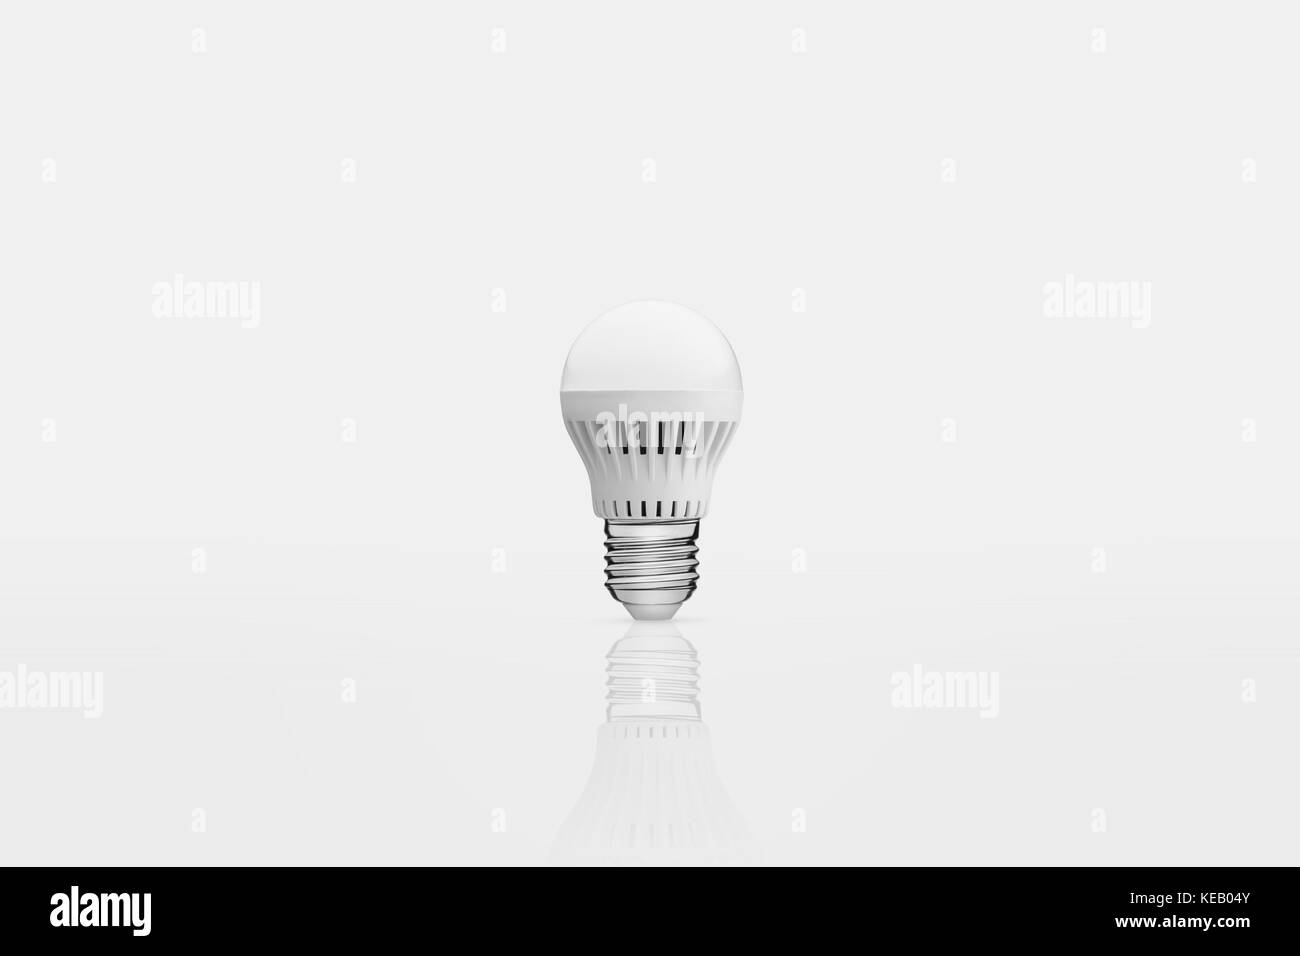 one energy saving lamp on a white background with reflection - Stock Image